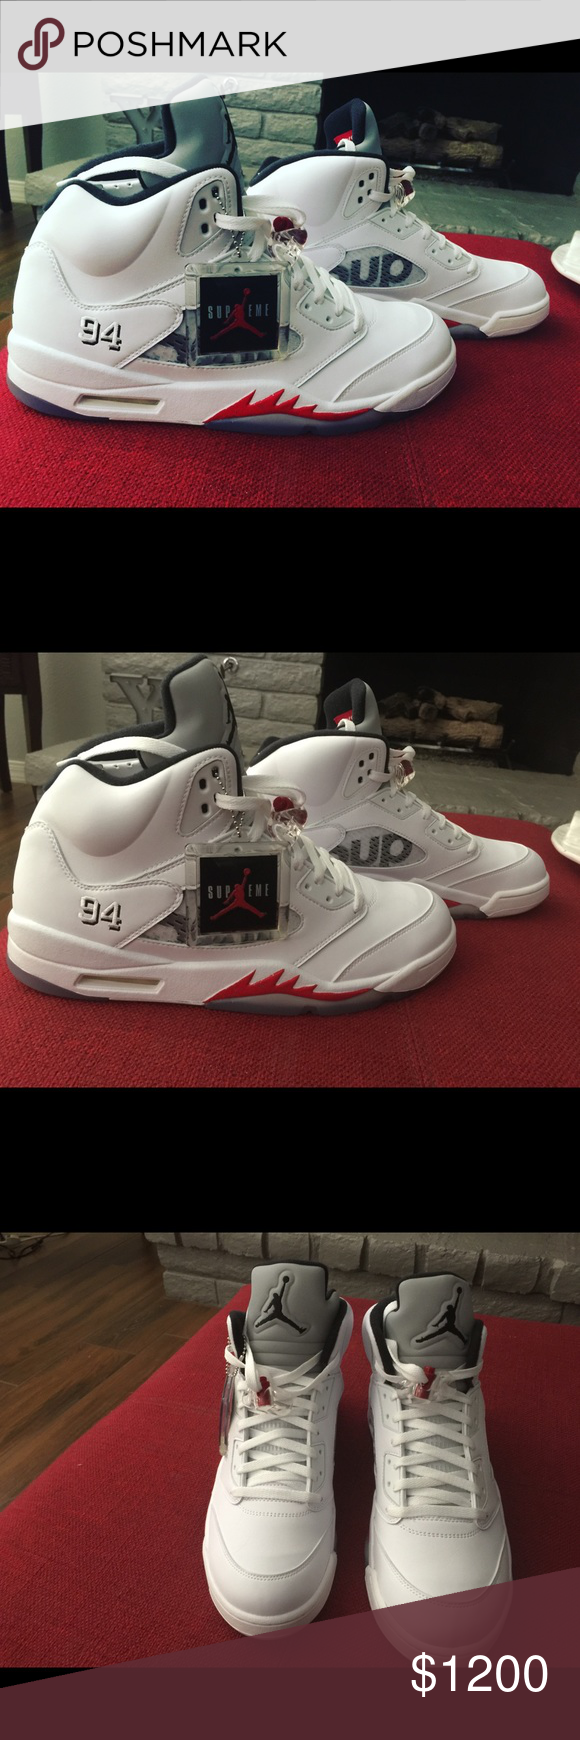 Jordan supreme retro 5s Brand new never worn dead stock Nike Shoes Sneakers